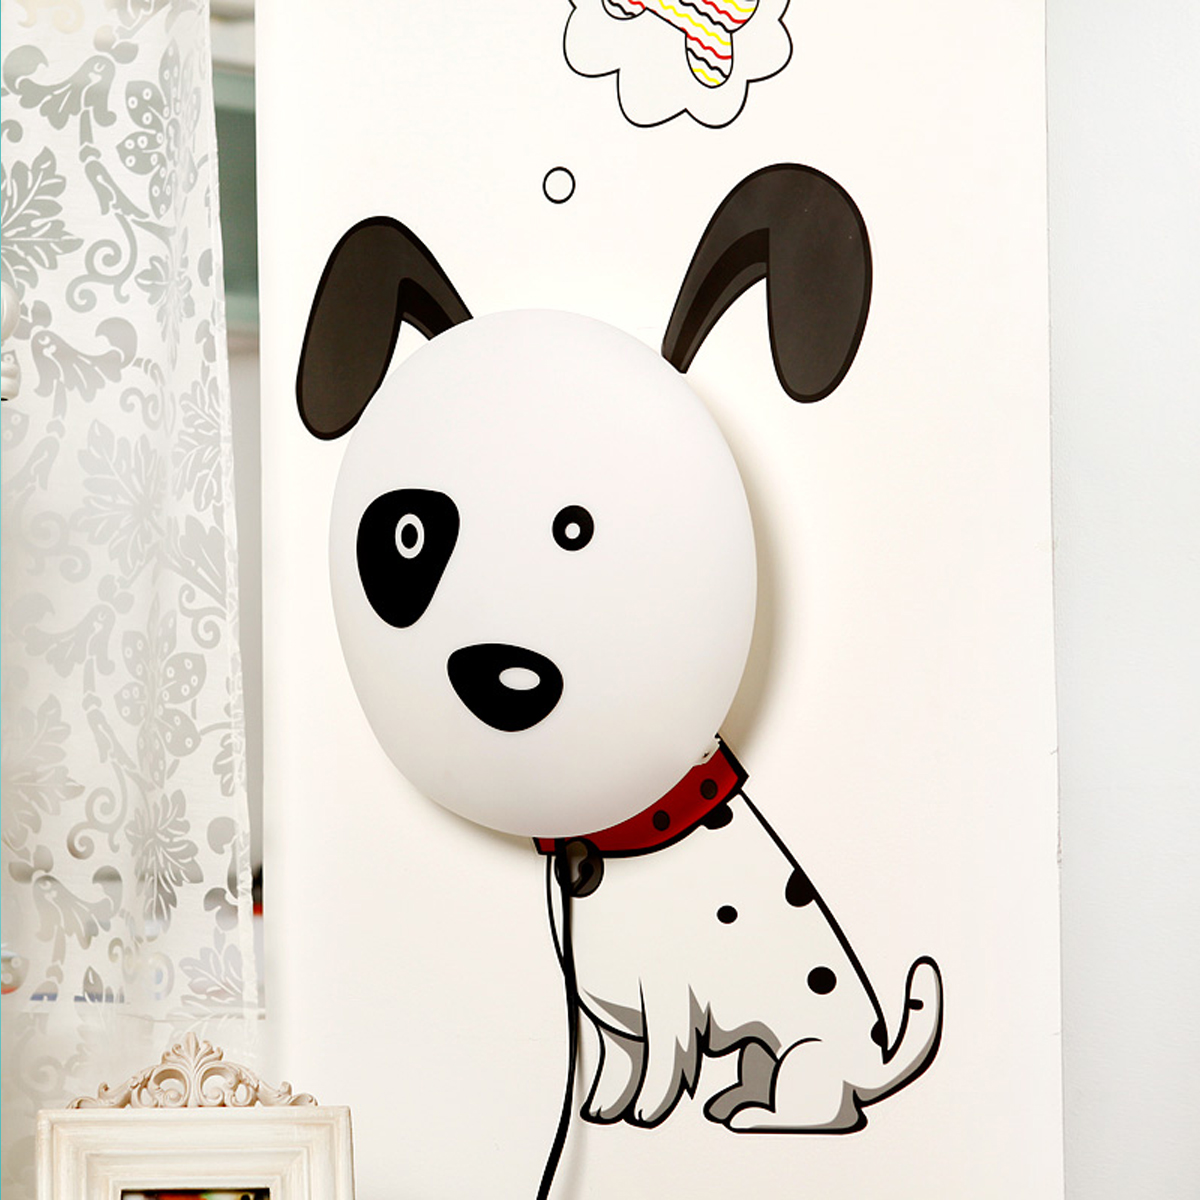 kinderlampe nachtlicht kinderzimmer mit wandtattoo kleiner hund ebay. Black Bedroom Furniture Sets. Home Design Ideas